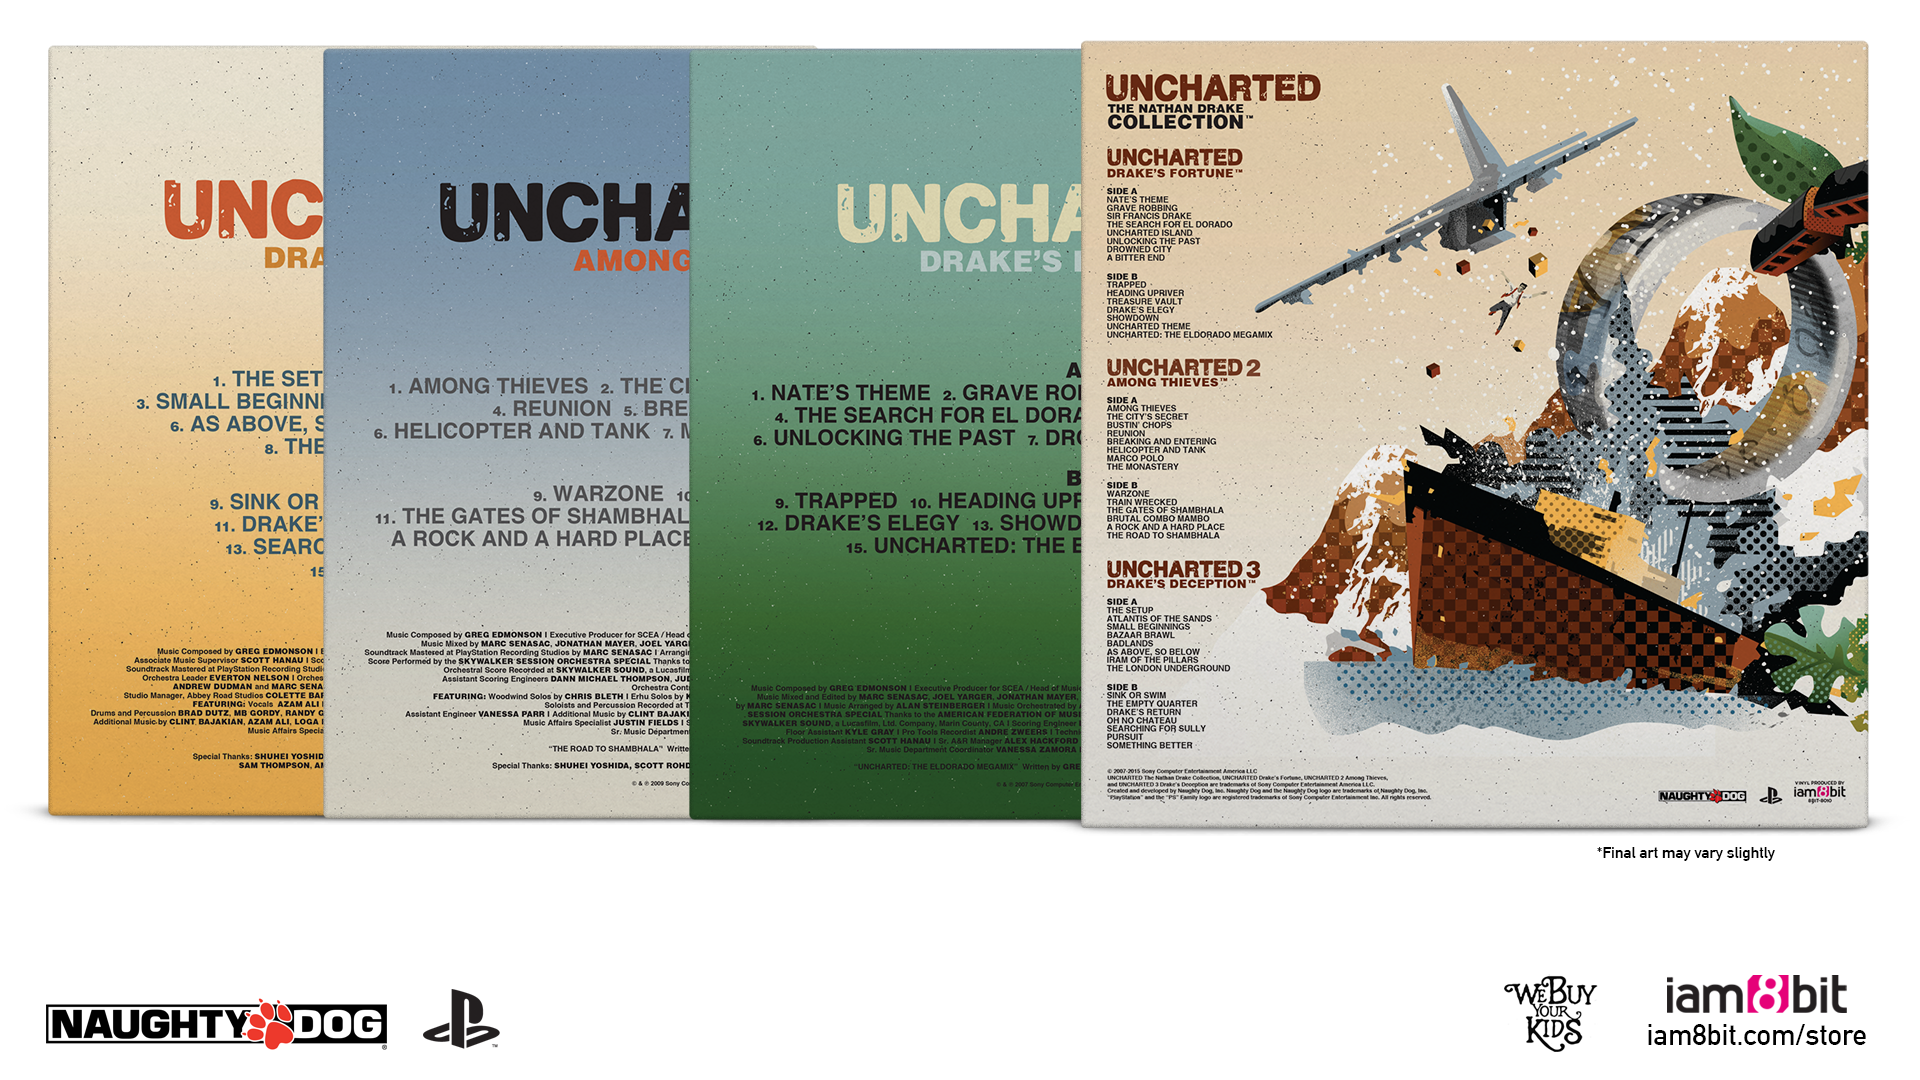 UNDC_Back_Covers_Social_Media_-_1080_Web